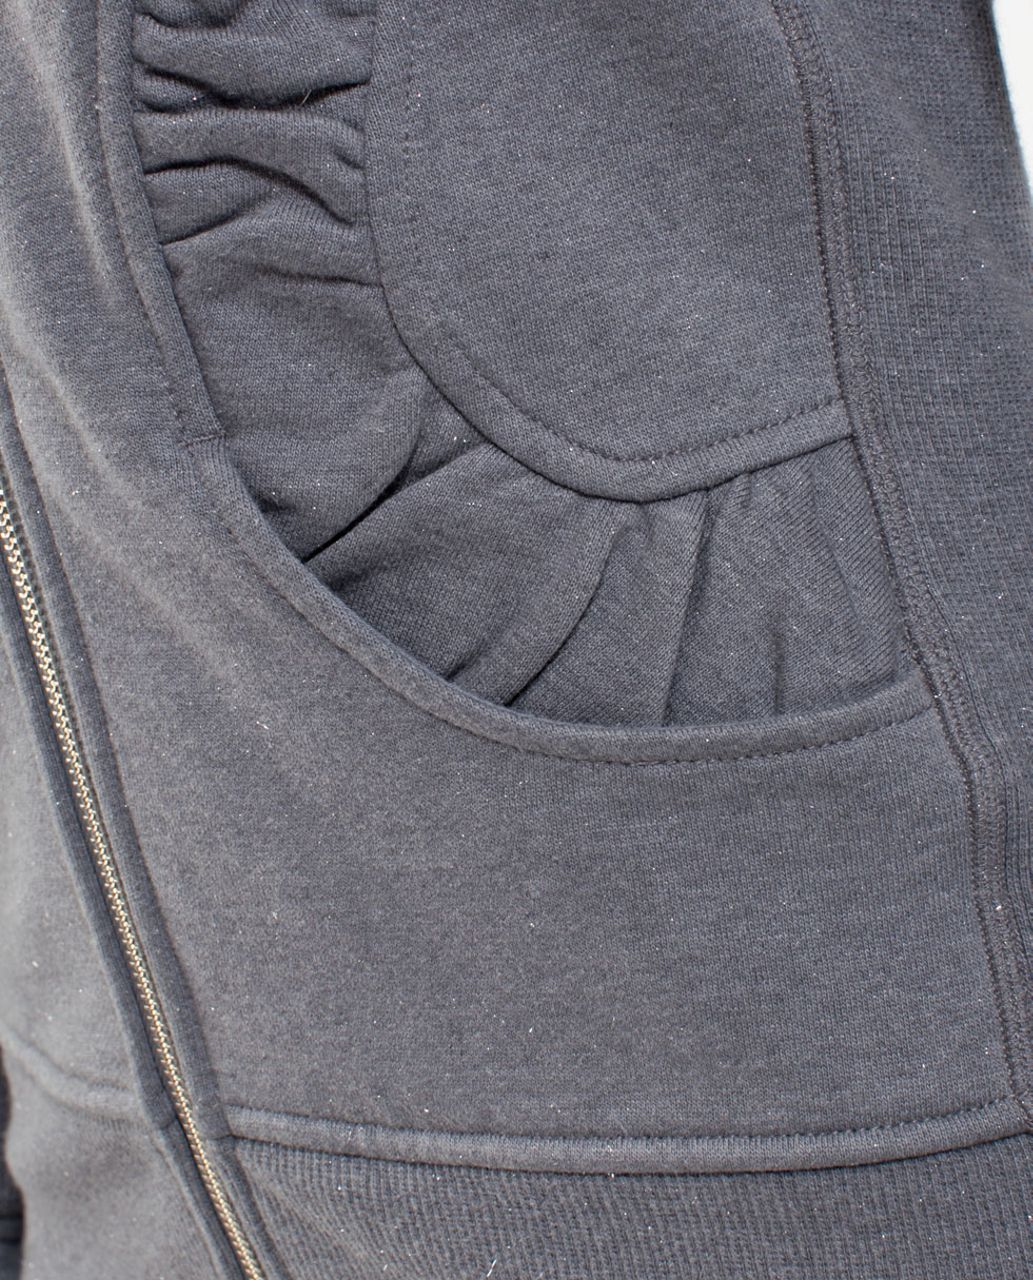 Lululemon Cuddle Up Jacket - Heathered Blurred Grey /  Blurred Grey